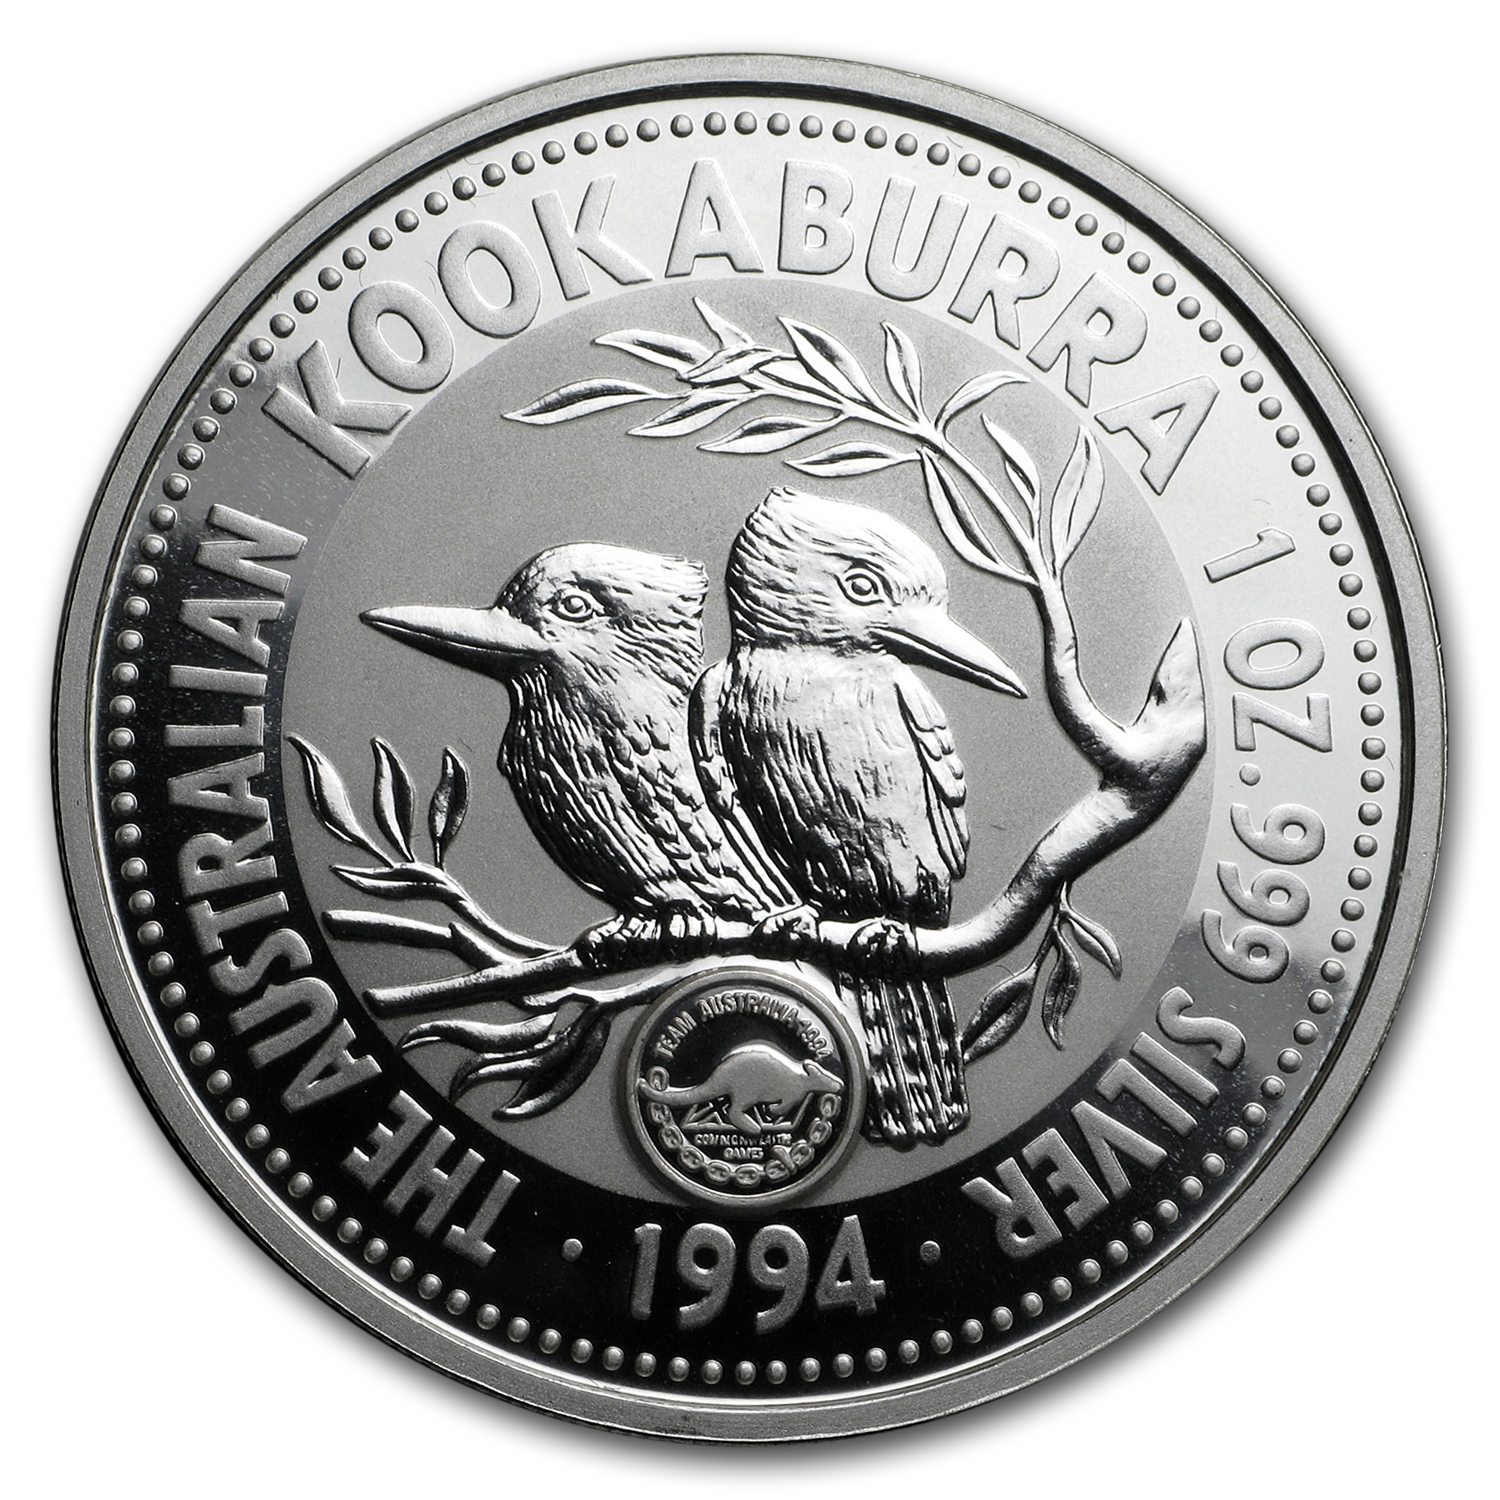 1994 1 oz Silver Australian Kookaburra - Commonwealth Games Privy